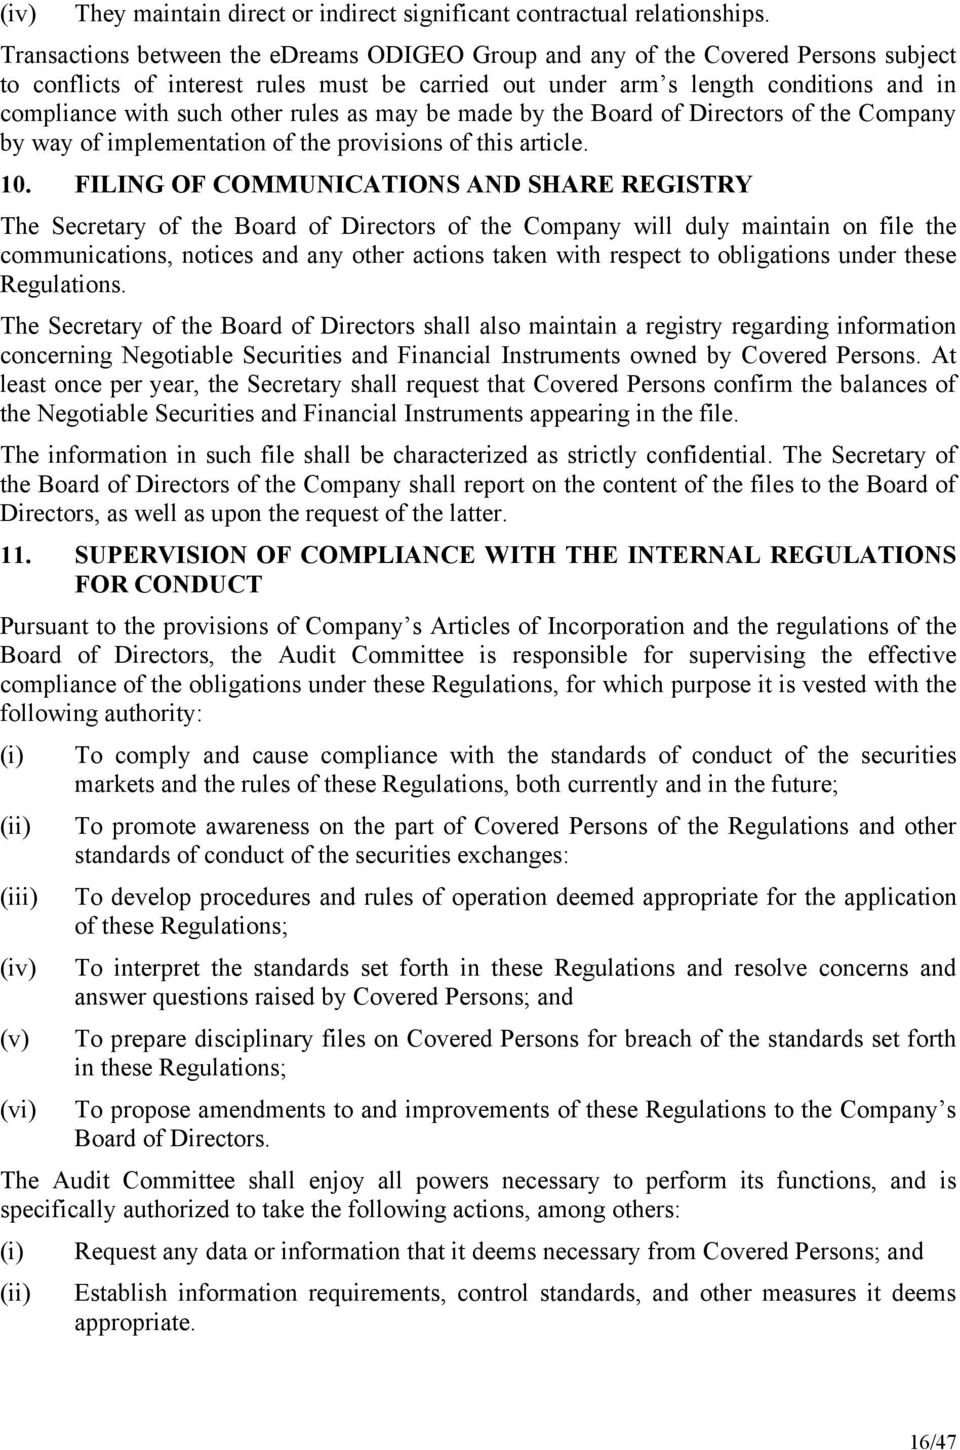 rules as may be made by the Board of Directors of the Company by way of implementation of the provisions of this article. 10.